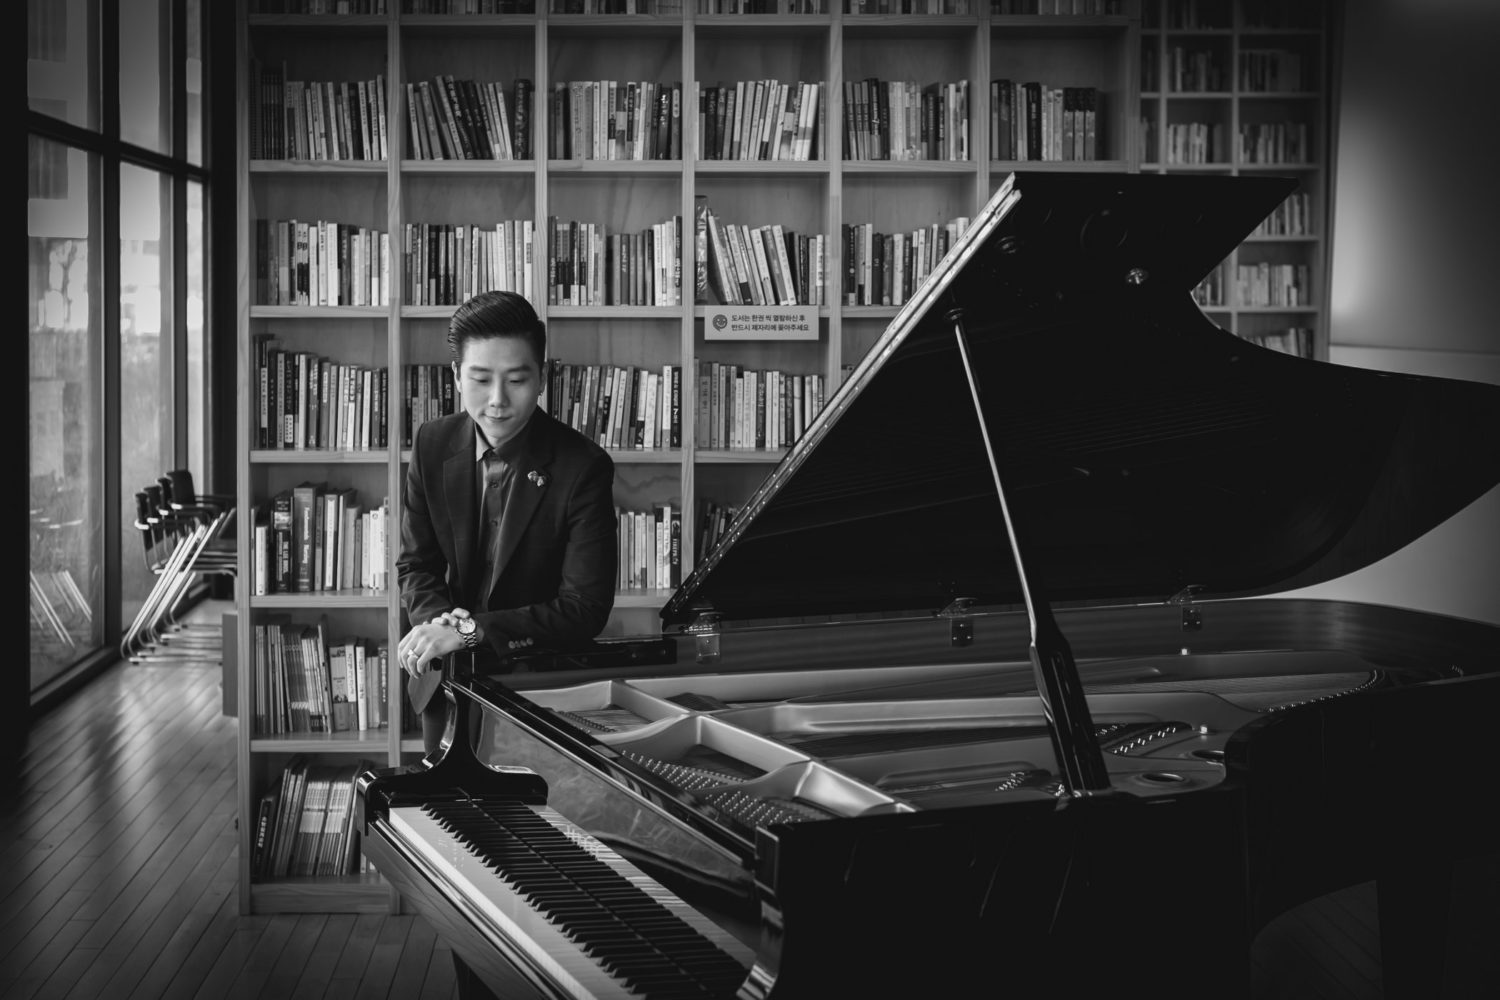 dolce-italia-photography-artist-pianist-photo-shoot-session